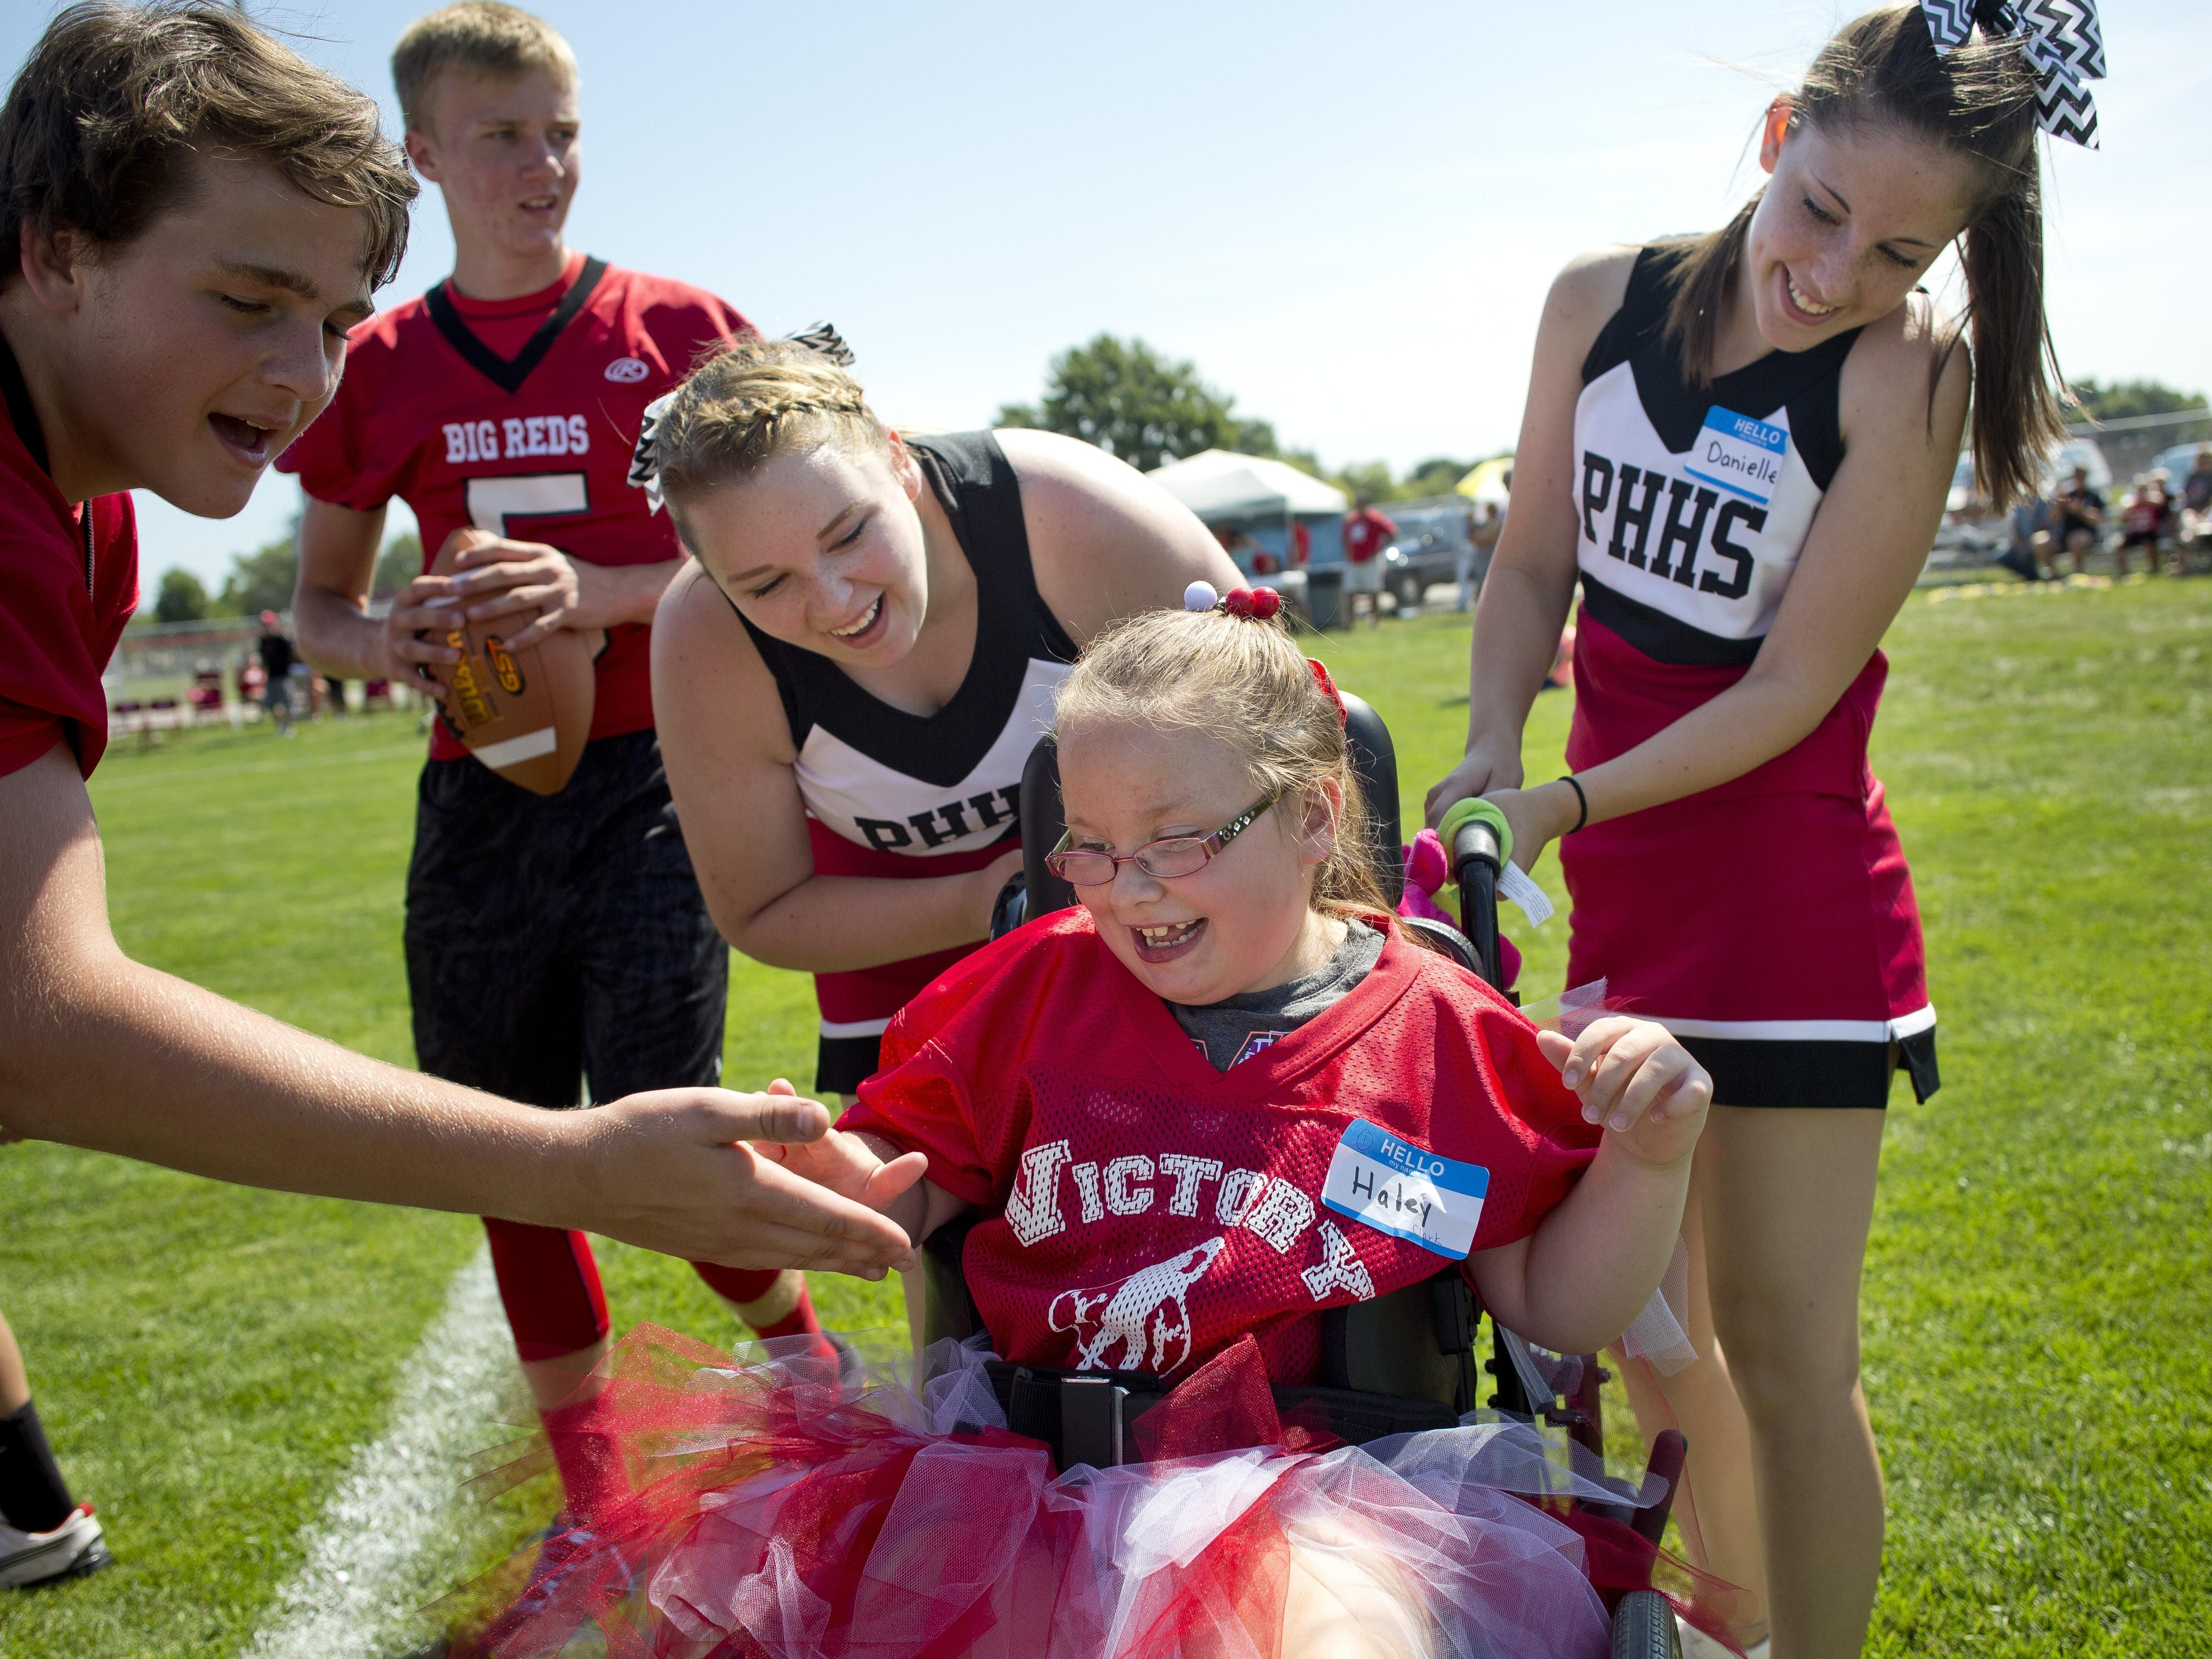 Haley Clark gets high-fives after she scored a touchdown with her mentors Tiffany Peyerk and Danielle Stockwell during Victory Day Saturday, August 15, 2015 in Memorial Stadium at Port Huron High School. The event paired special needs students with mentors from the football and cheerleading teams.